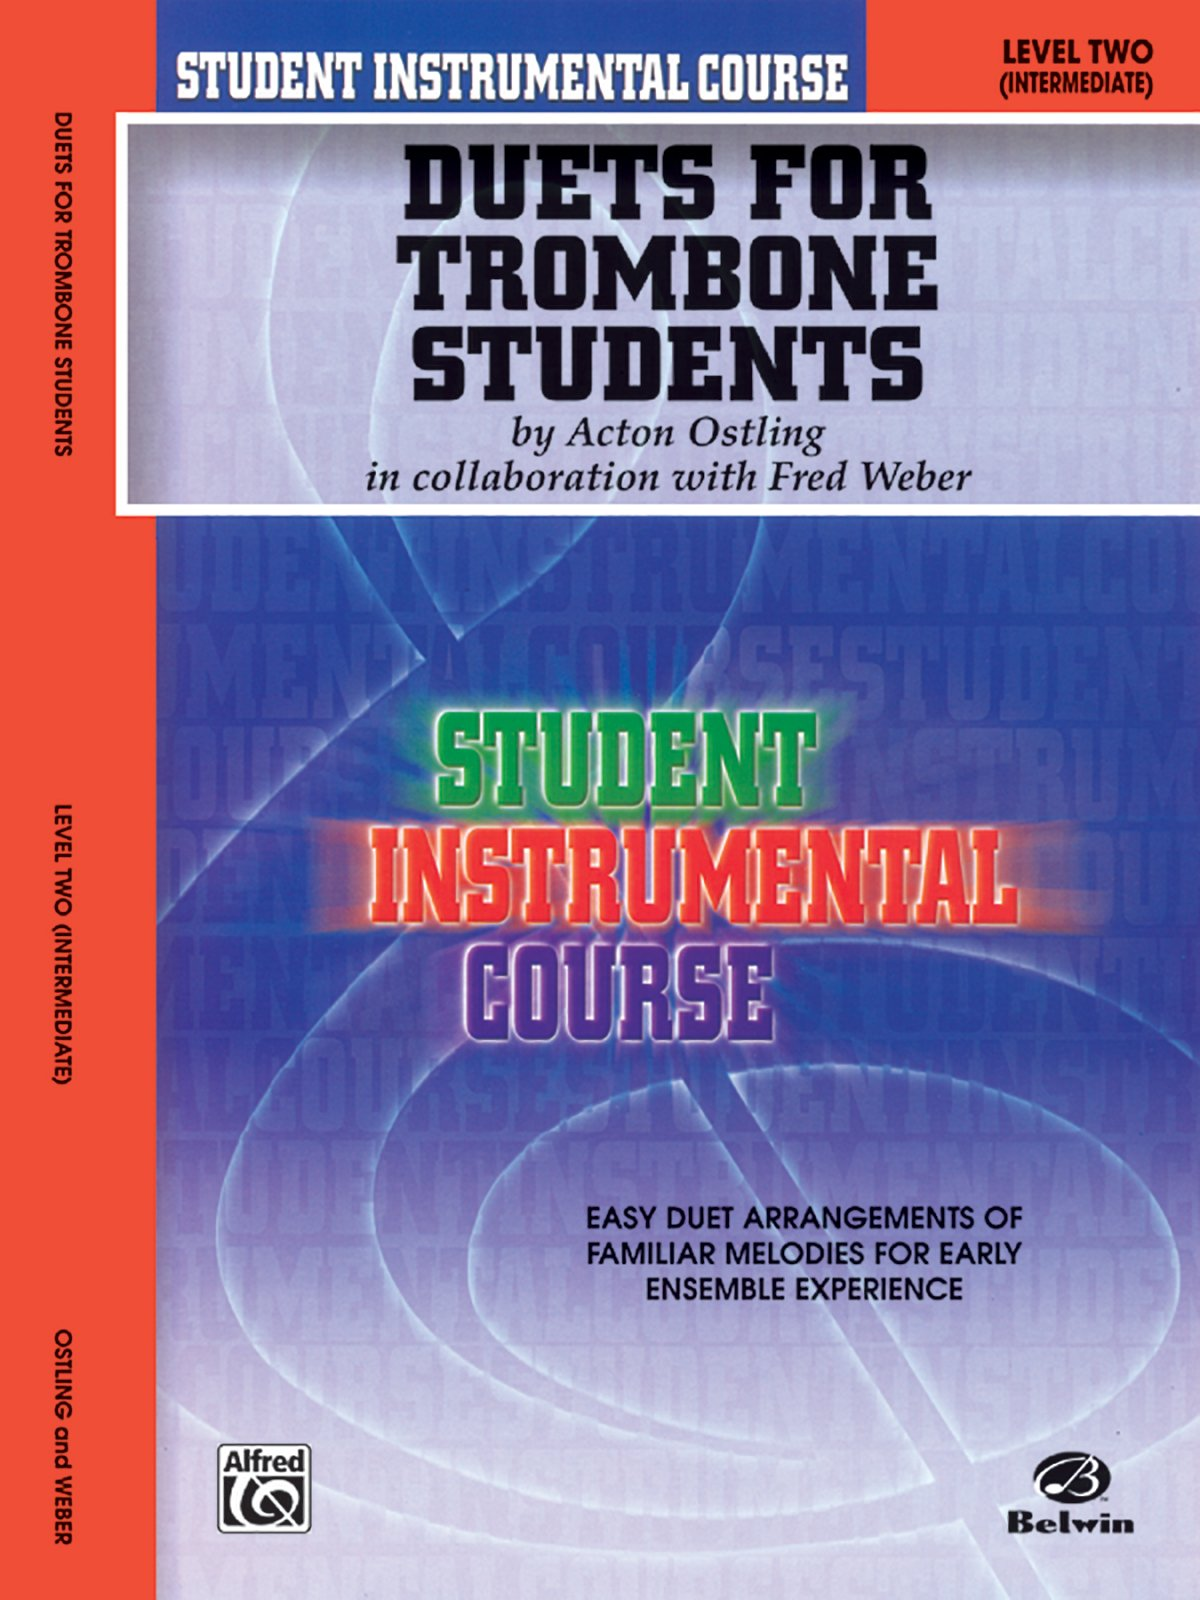 Student Instrumental Course Duets for Trombone Students: Level II